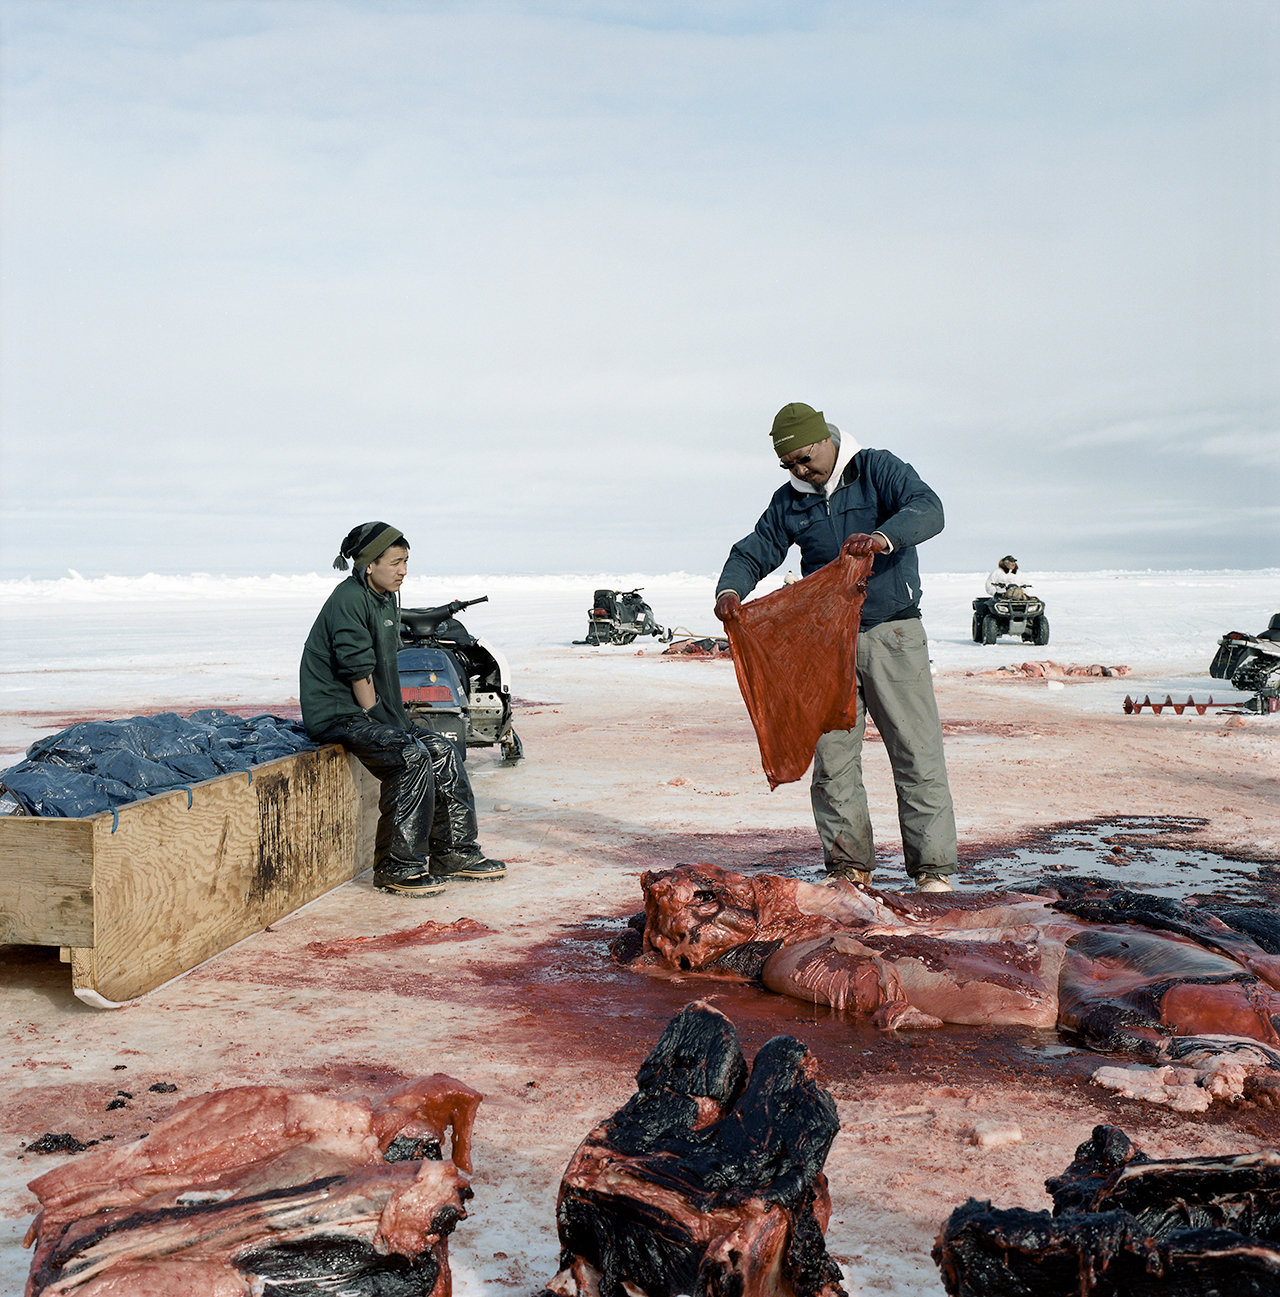 Kobe watching Art taking the liver lining of the whale for a drum, 2012